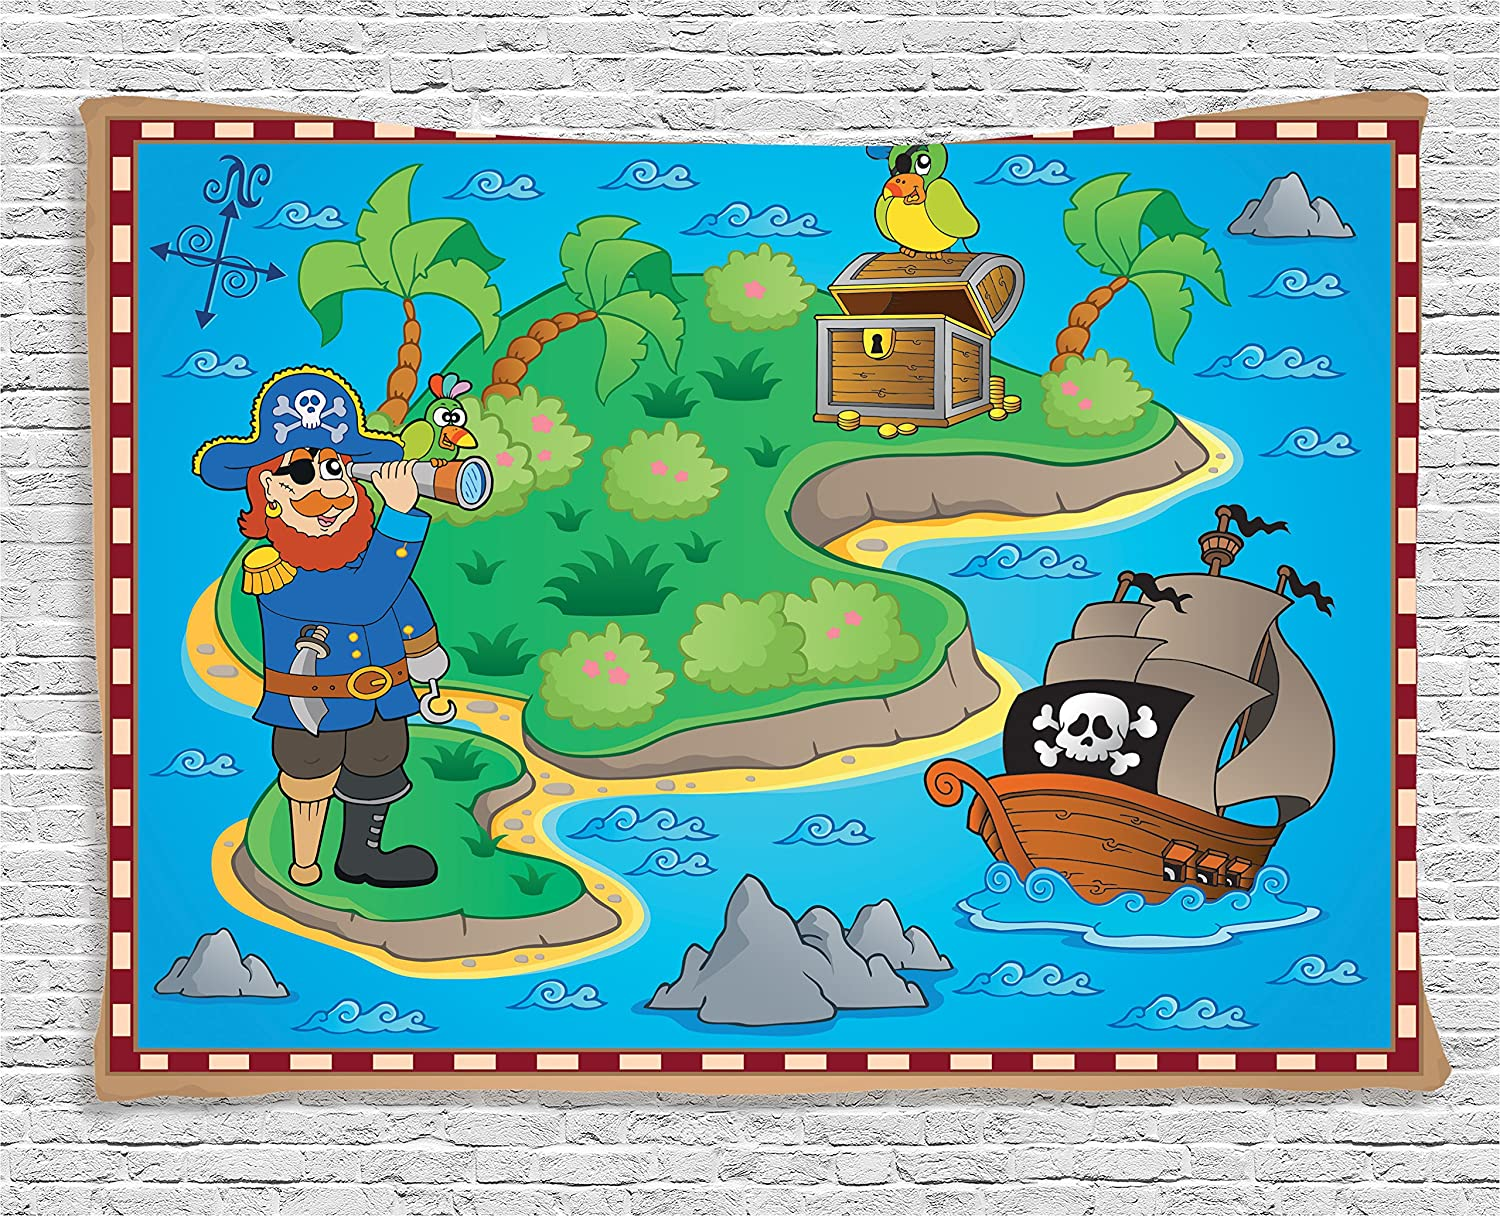 (150cm W By 100cm L, Multi 7) Kids Tapestry Island Map Decor by Ambesonne, Cartoon Pirate and Treasure with Ship and Parrot Fun Play Art Party Theme, Wall Hanging for Bedroom Boys Girls Children Dorm, 60 W X 40 L Inch, Blue Green B01LYPXLA3 60